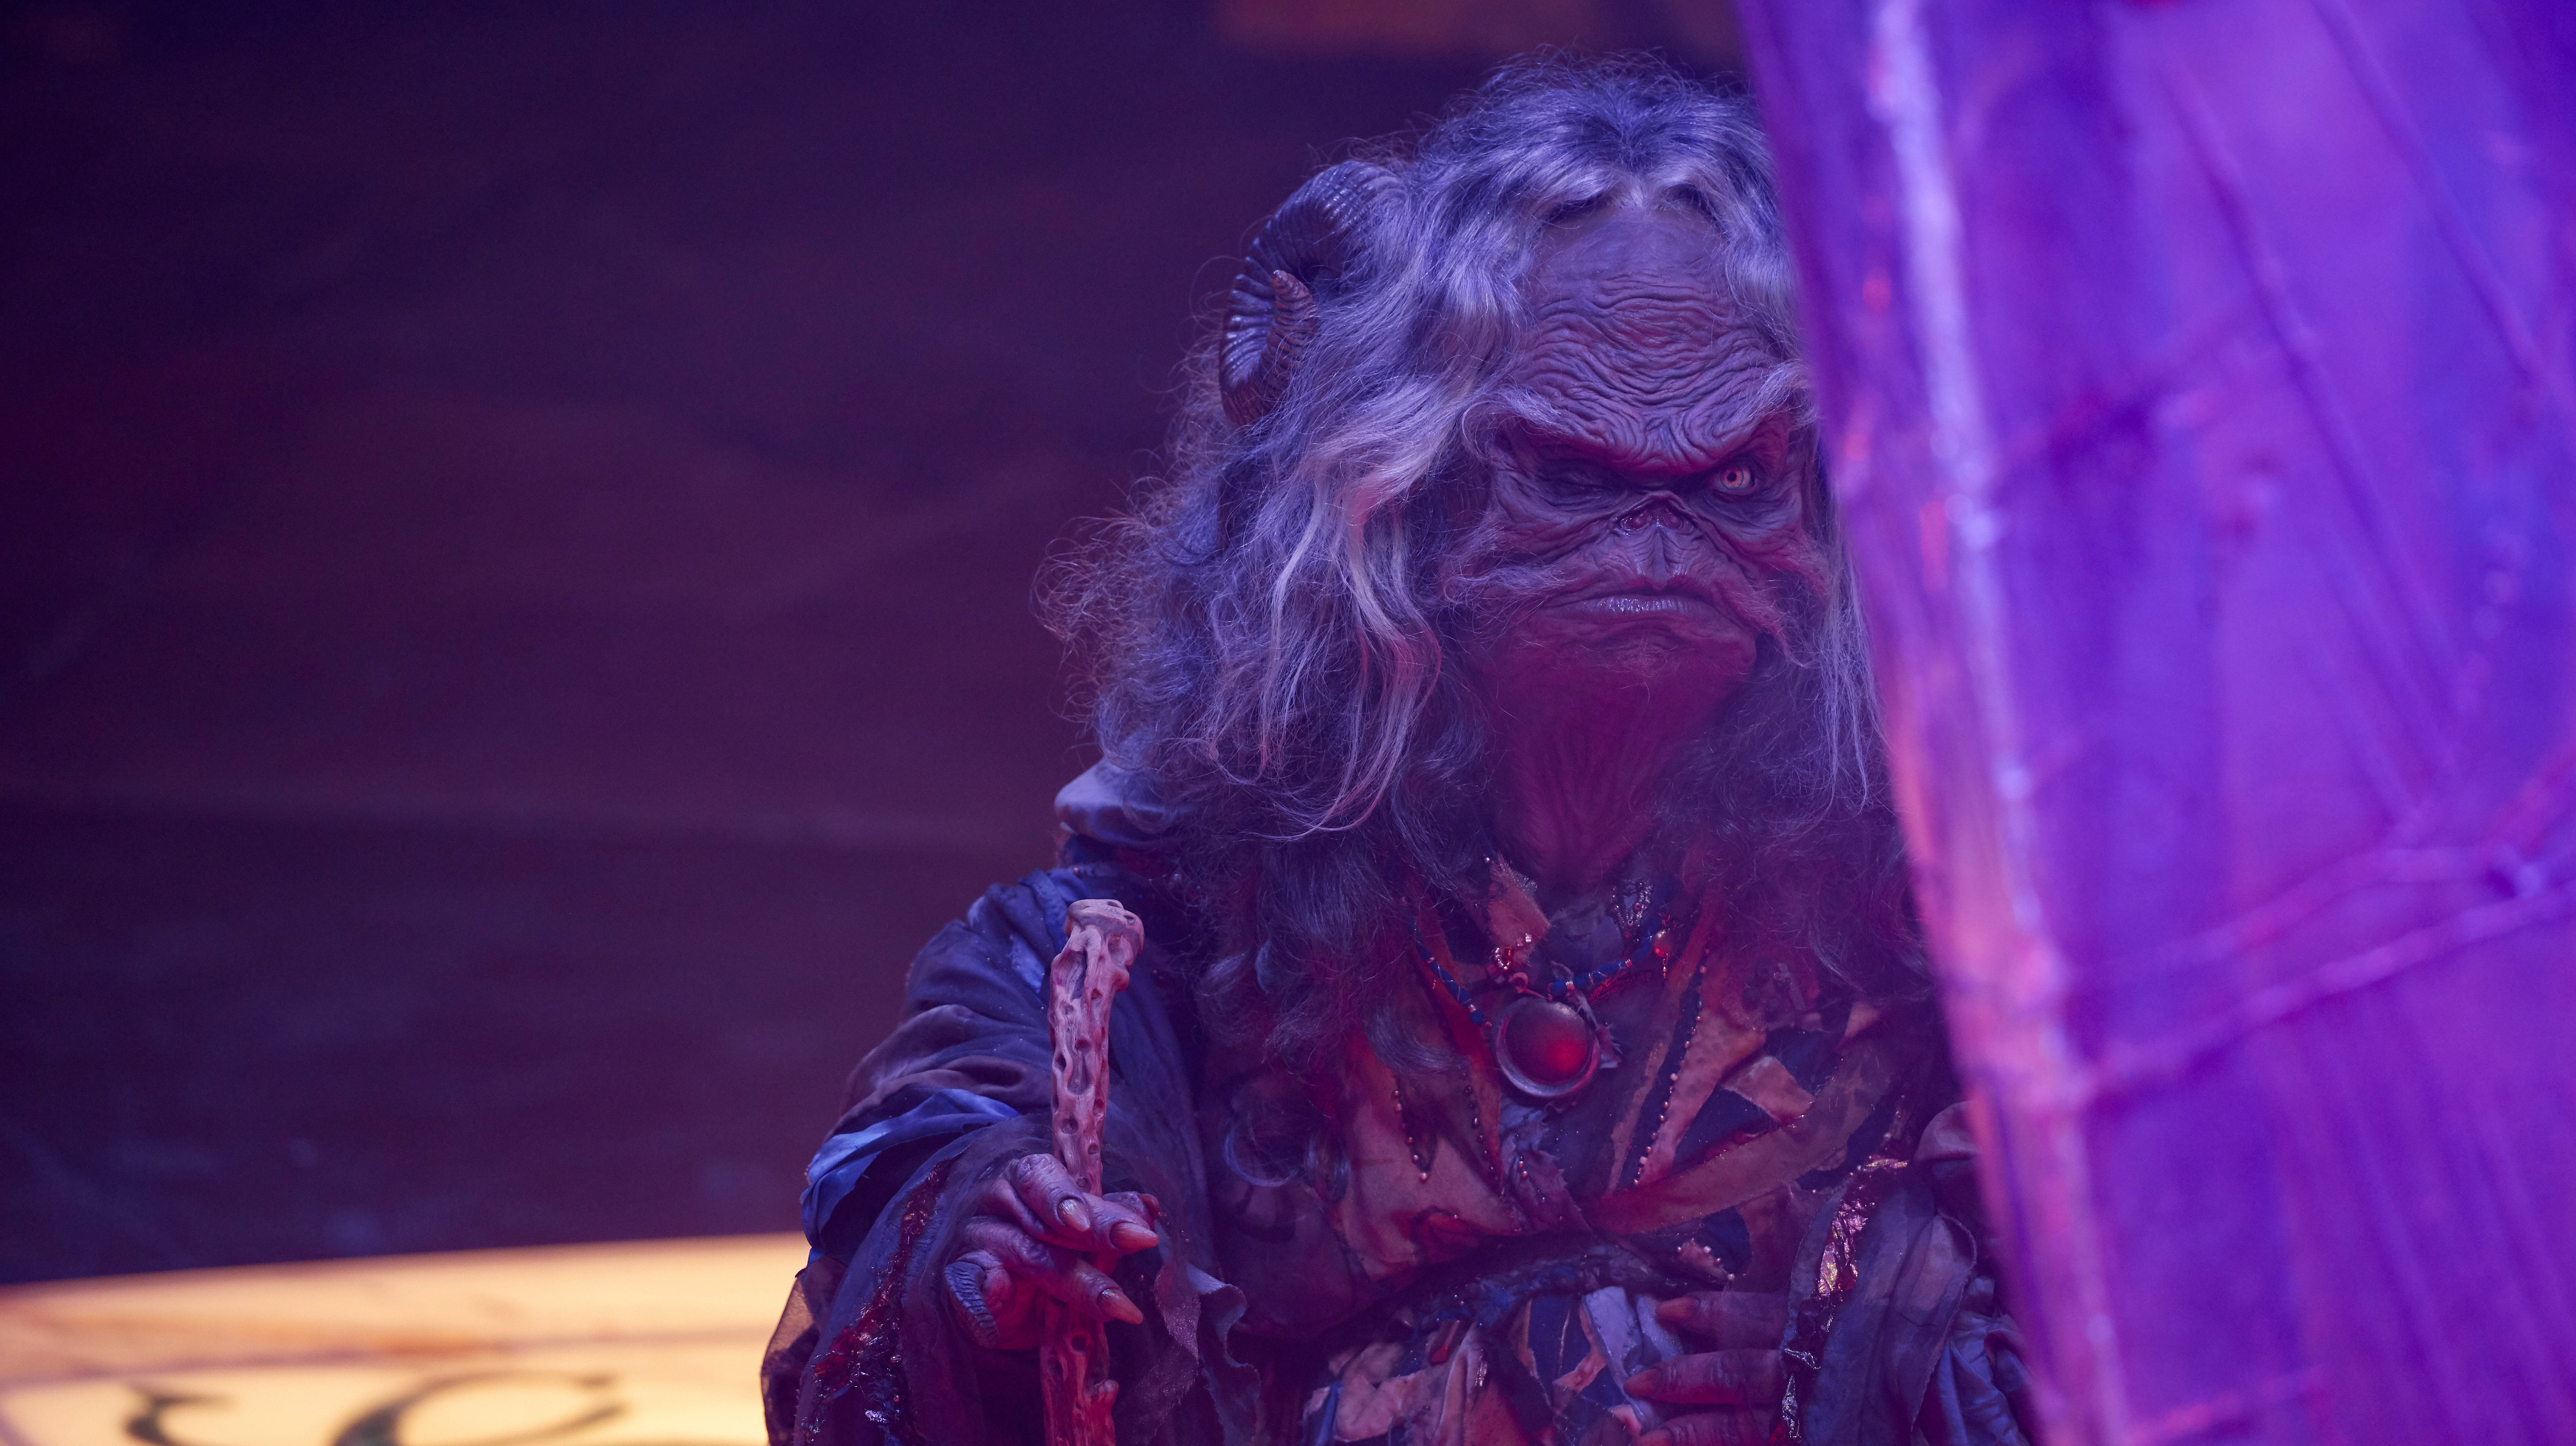 Gizmodo Roundtable: The Beautiful And Terrifying The Dark Crystal: Age Of Resistance